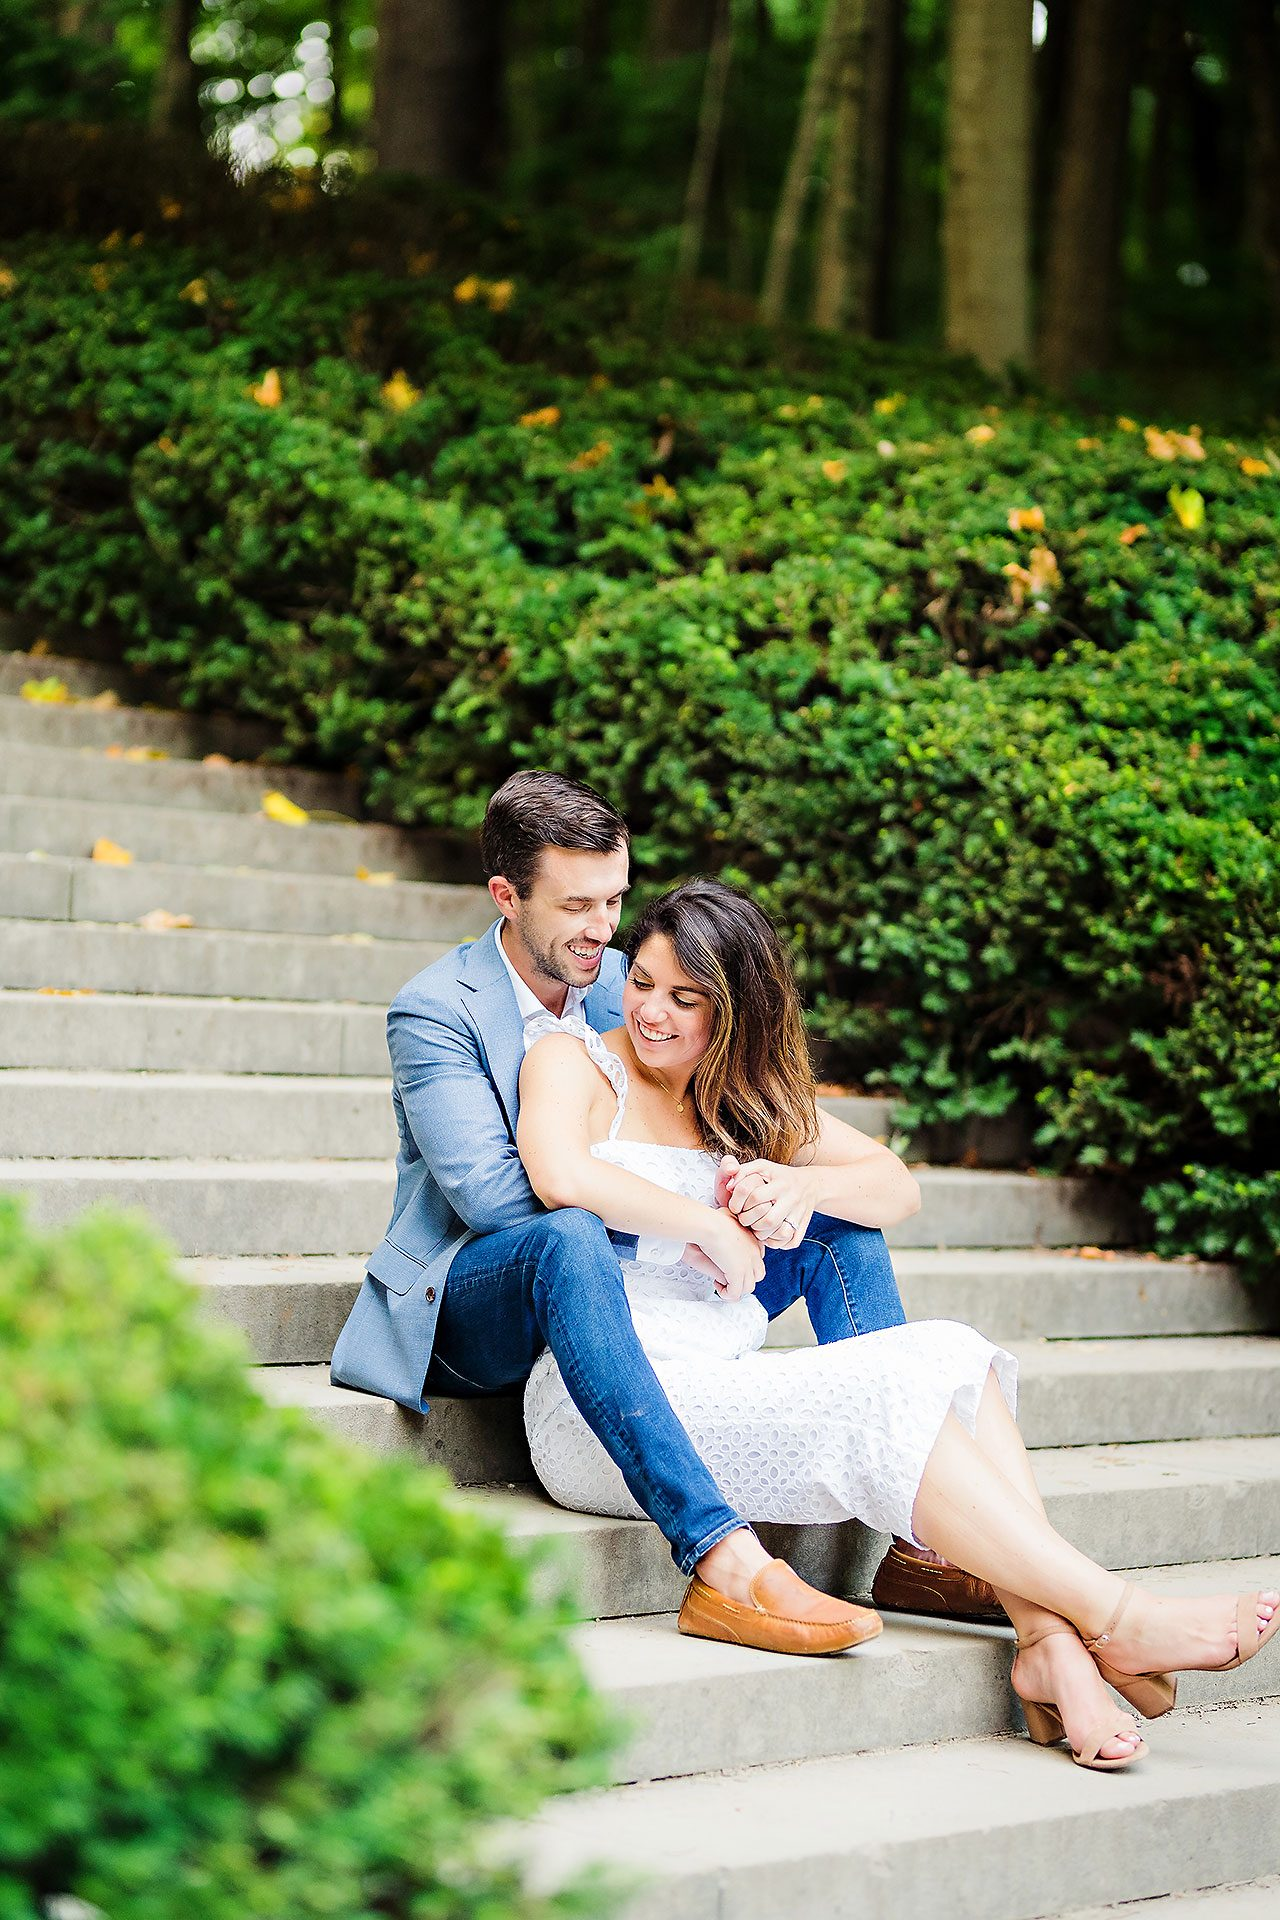 Kate Sawyer Holcomb Gardens Engagement Session 120